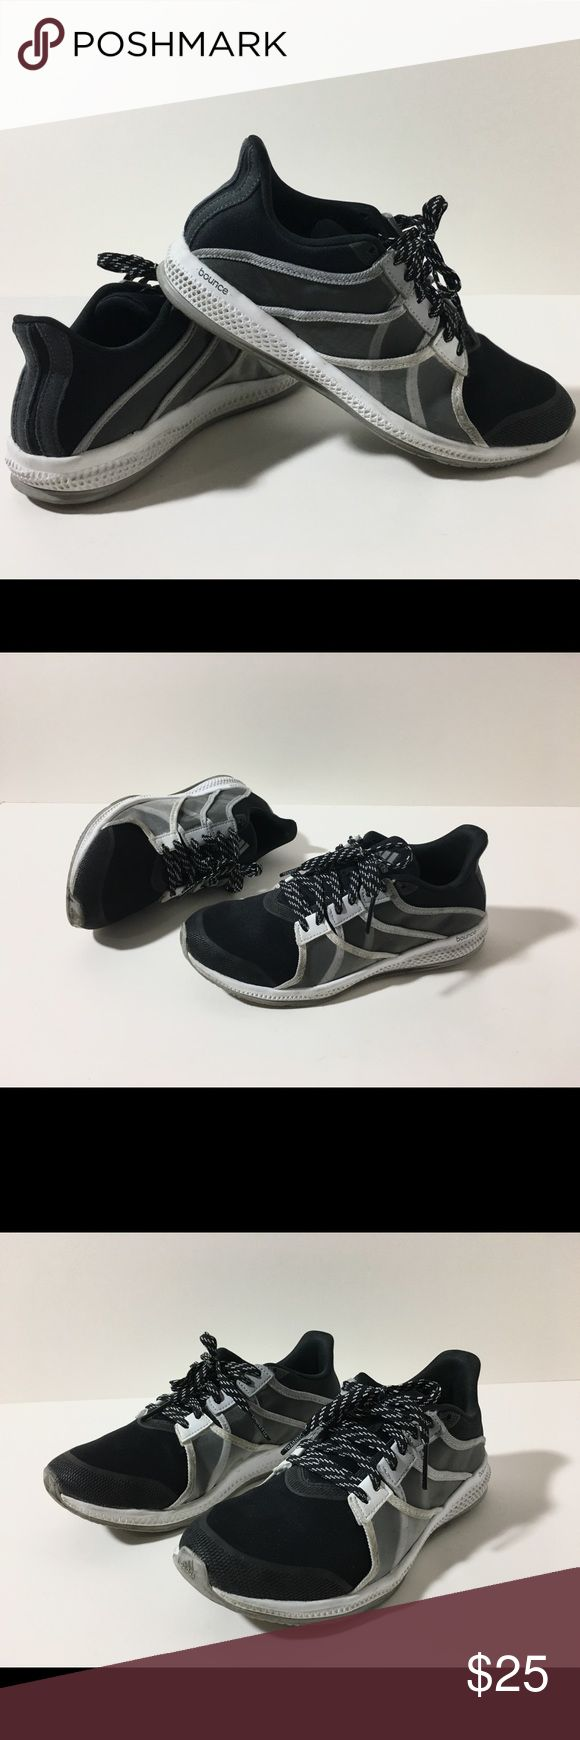 Adidas Bounce shoes Good condition Adidas Bounce shoes Adidas Shoes Sneakers